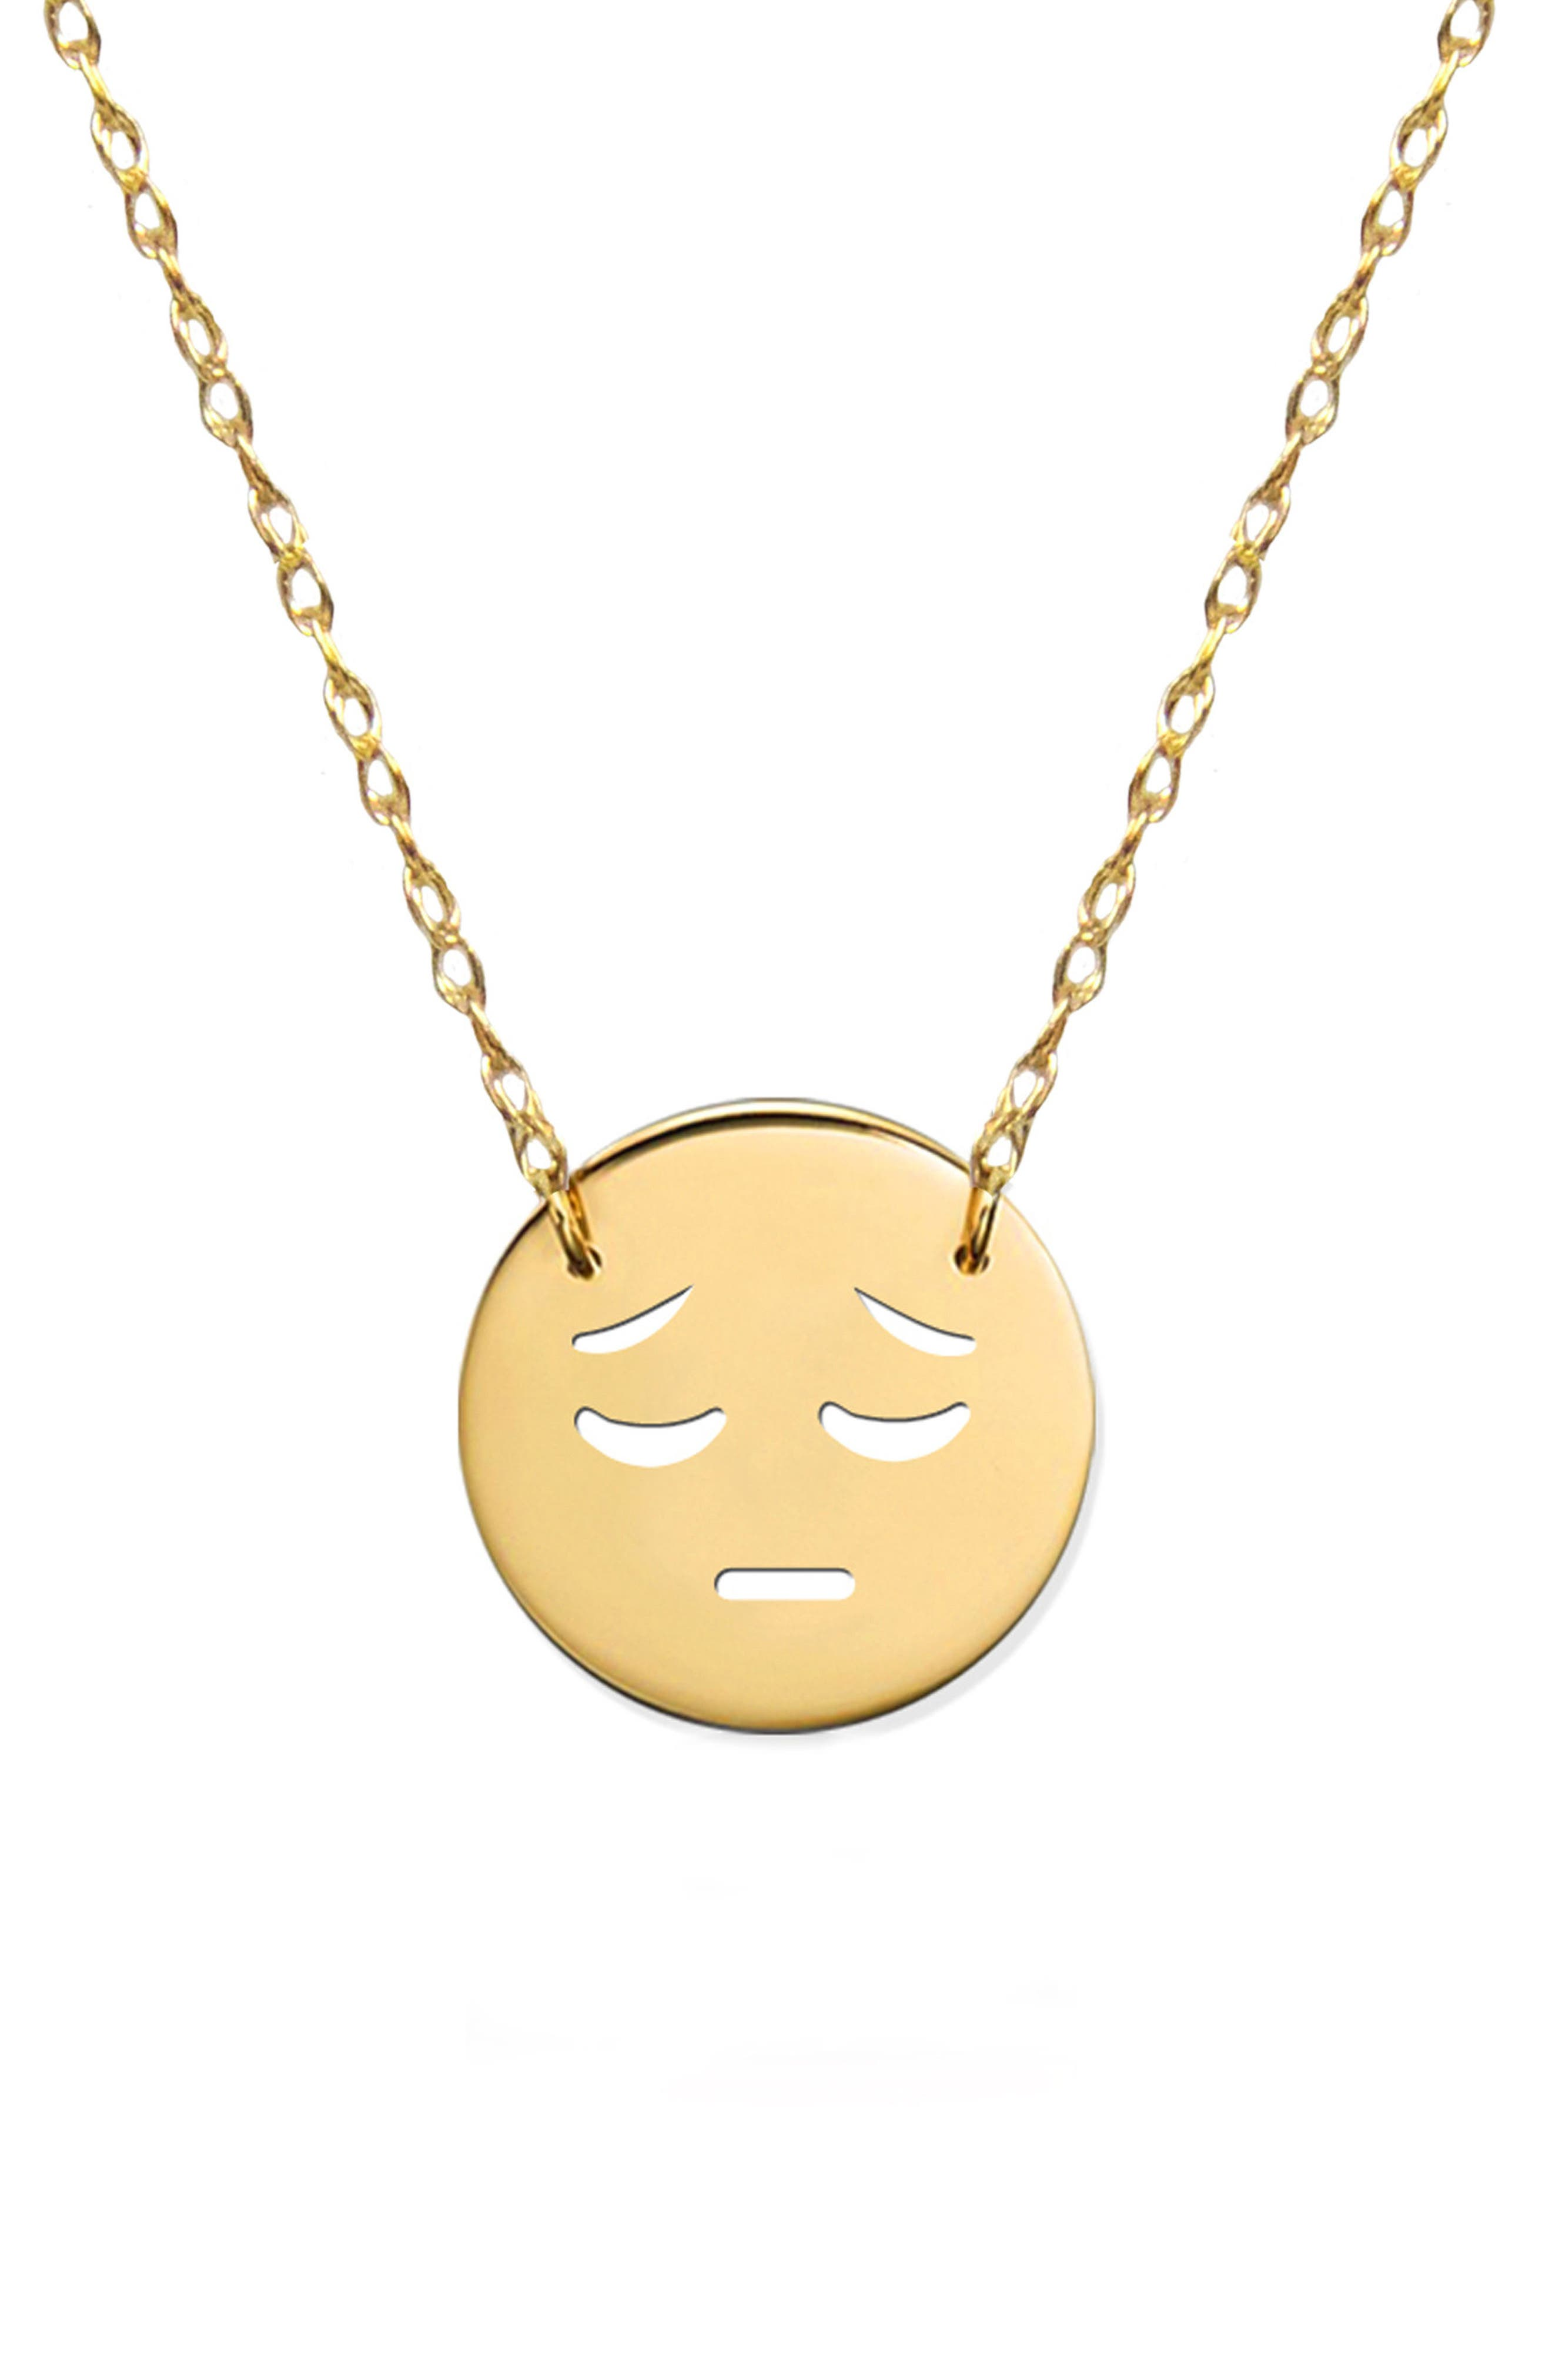 Sad Emoji Pendant Necklace,                         Main,                         color, Yellow Gold